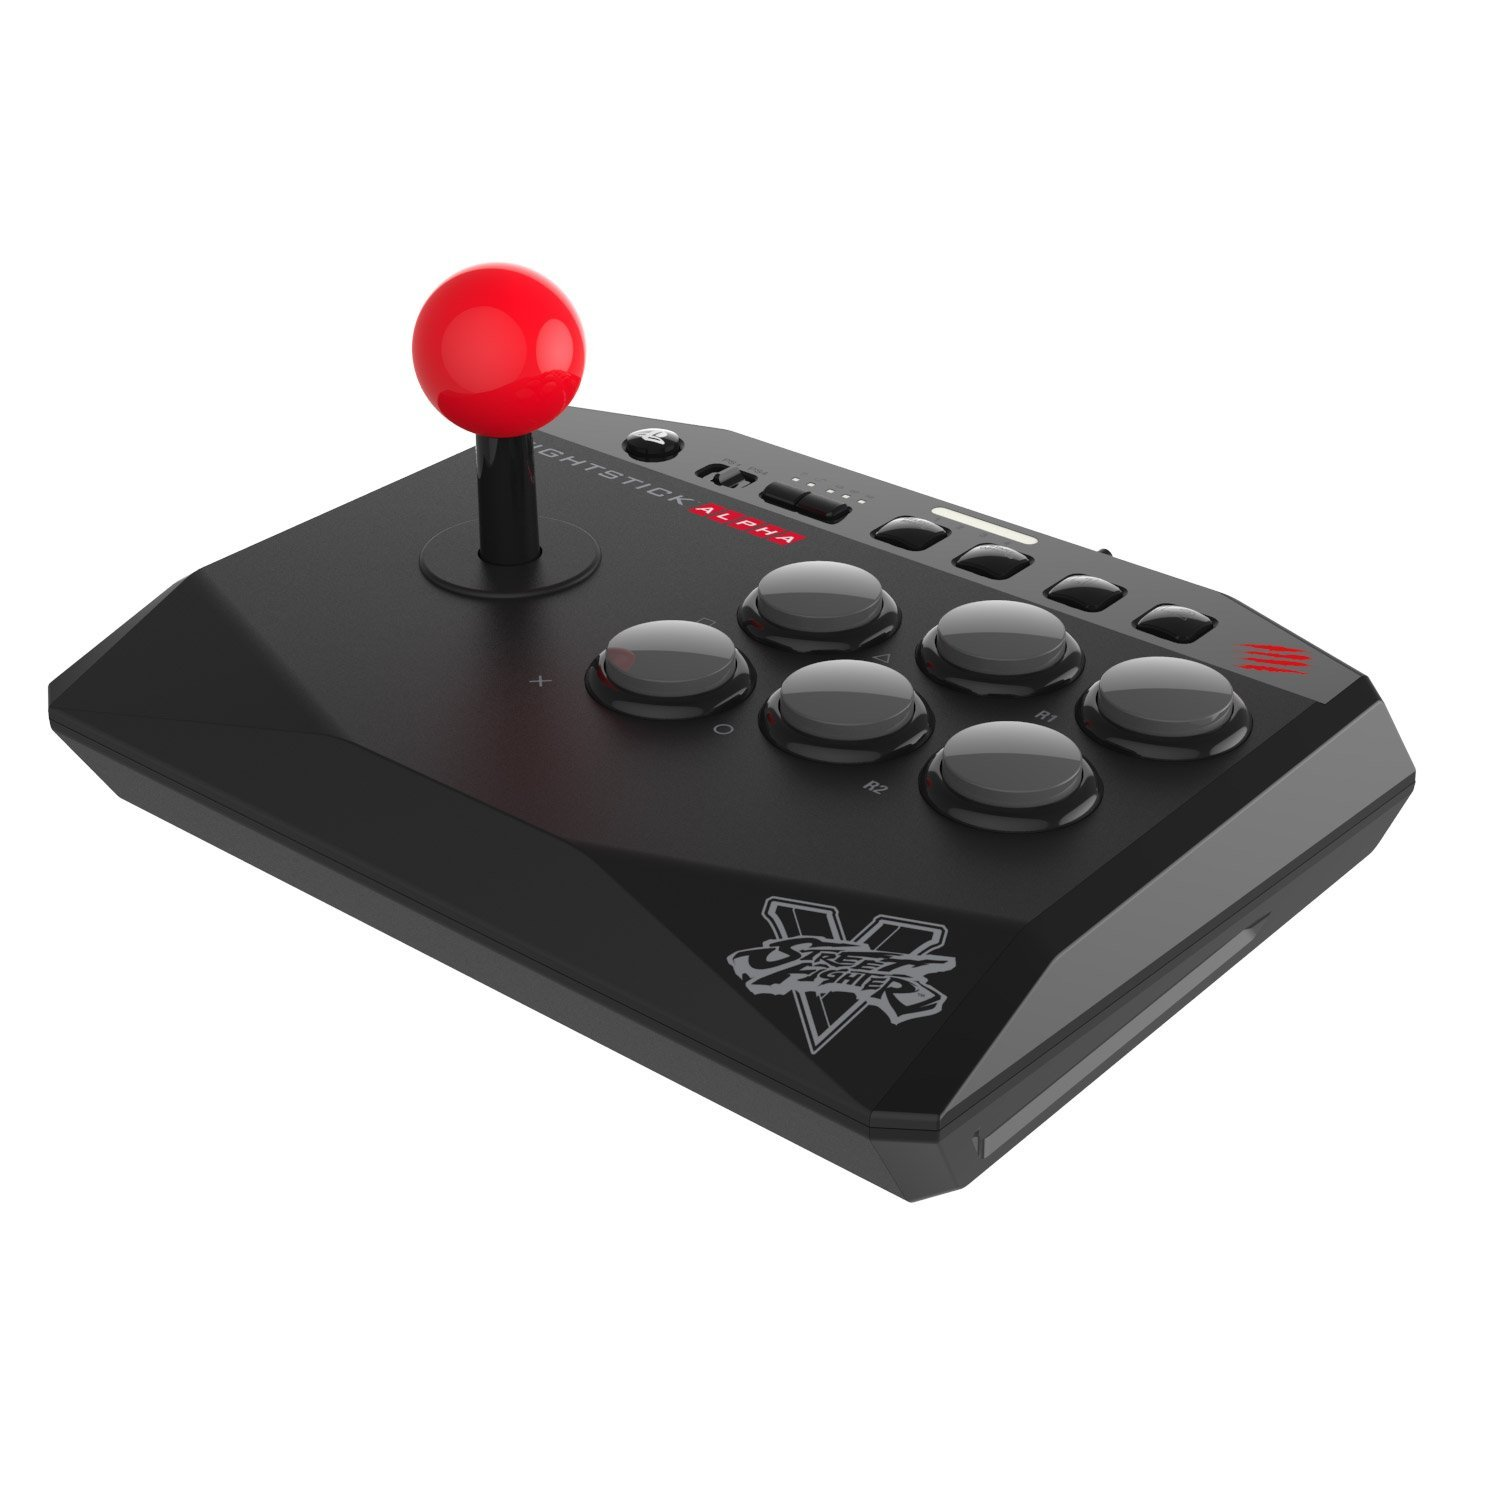 6 8 Button Arcade Cabinet Fight Stick Retropad Layout